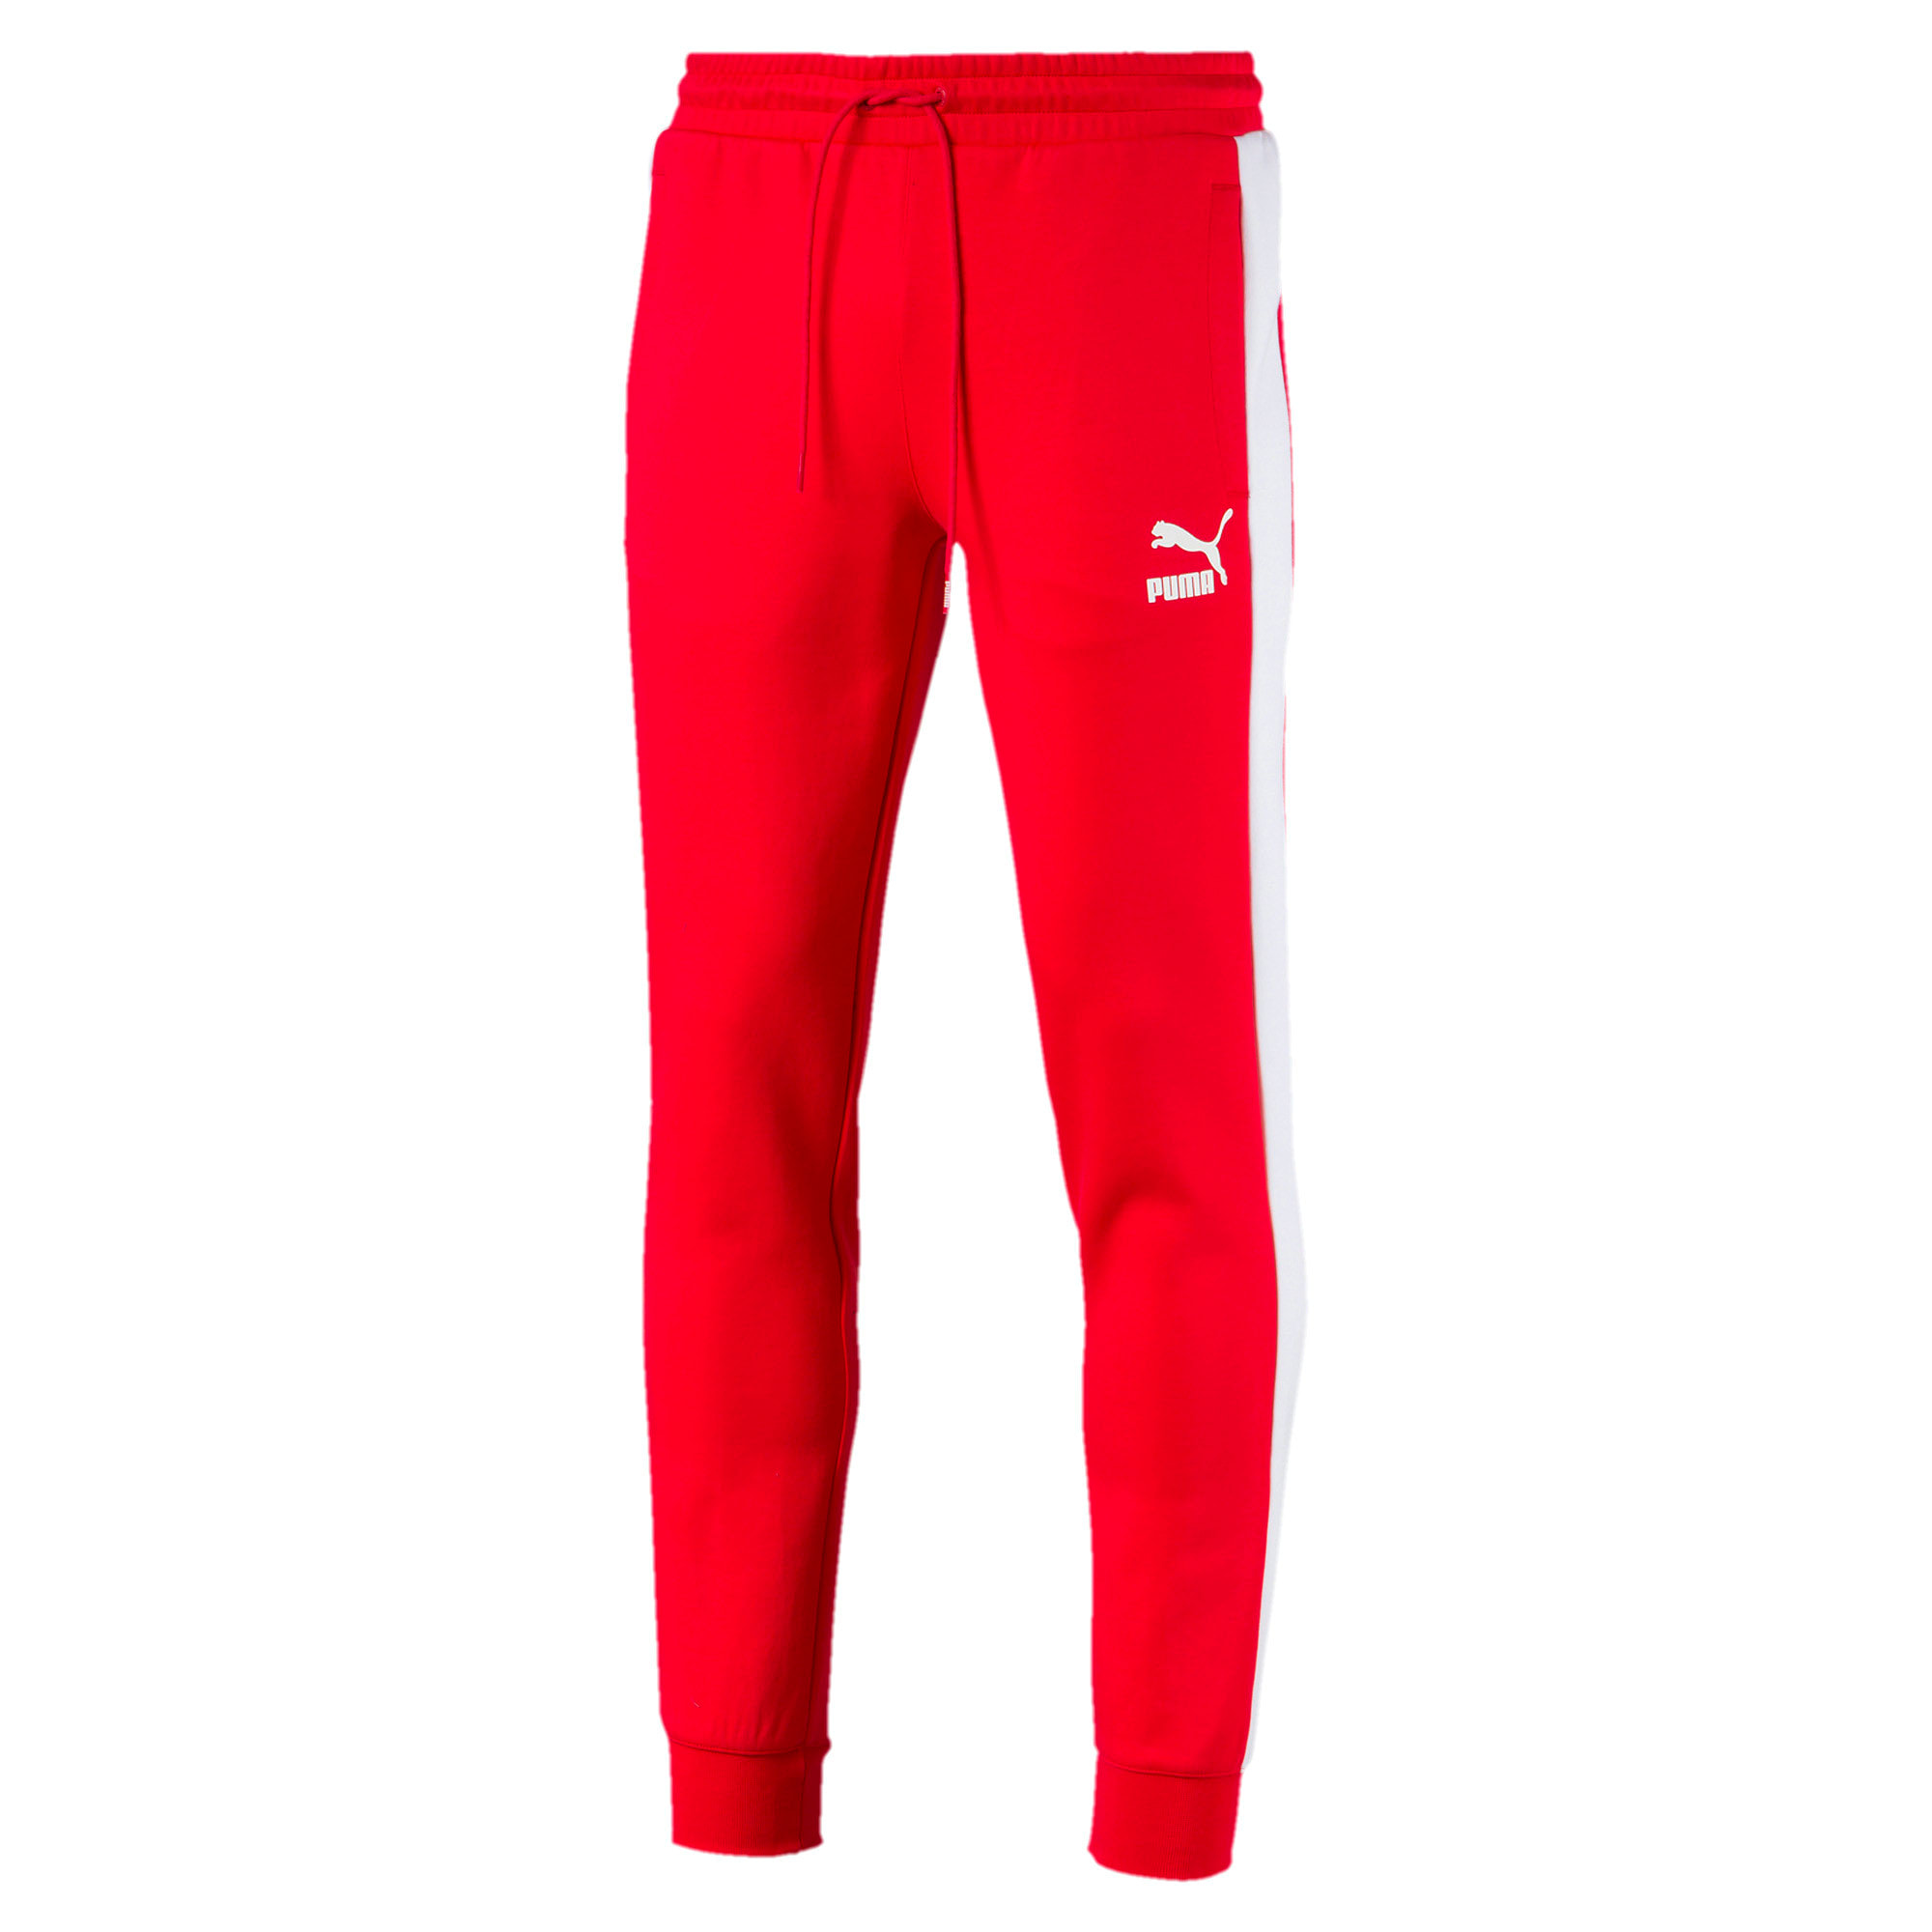 Thumbnail 1 of Archive Iconic T7 Double Knit Men's Track Pants, High Risk Red, medium